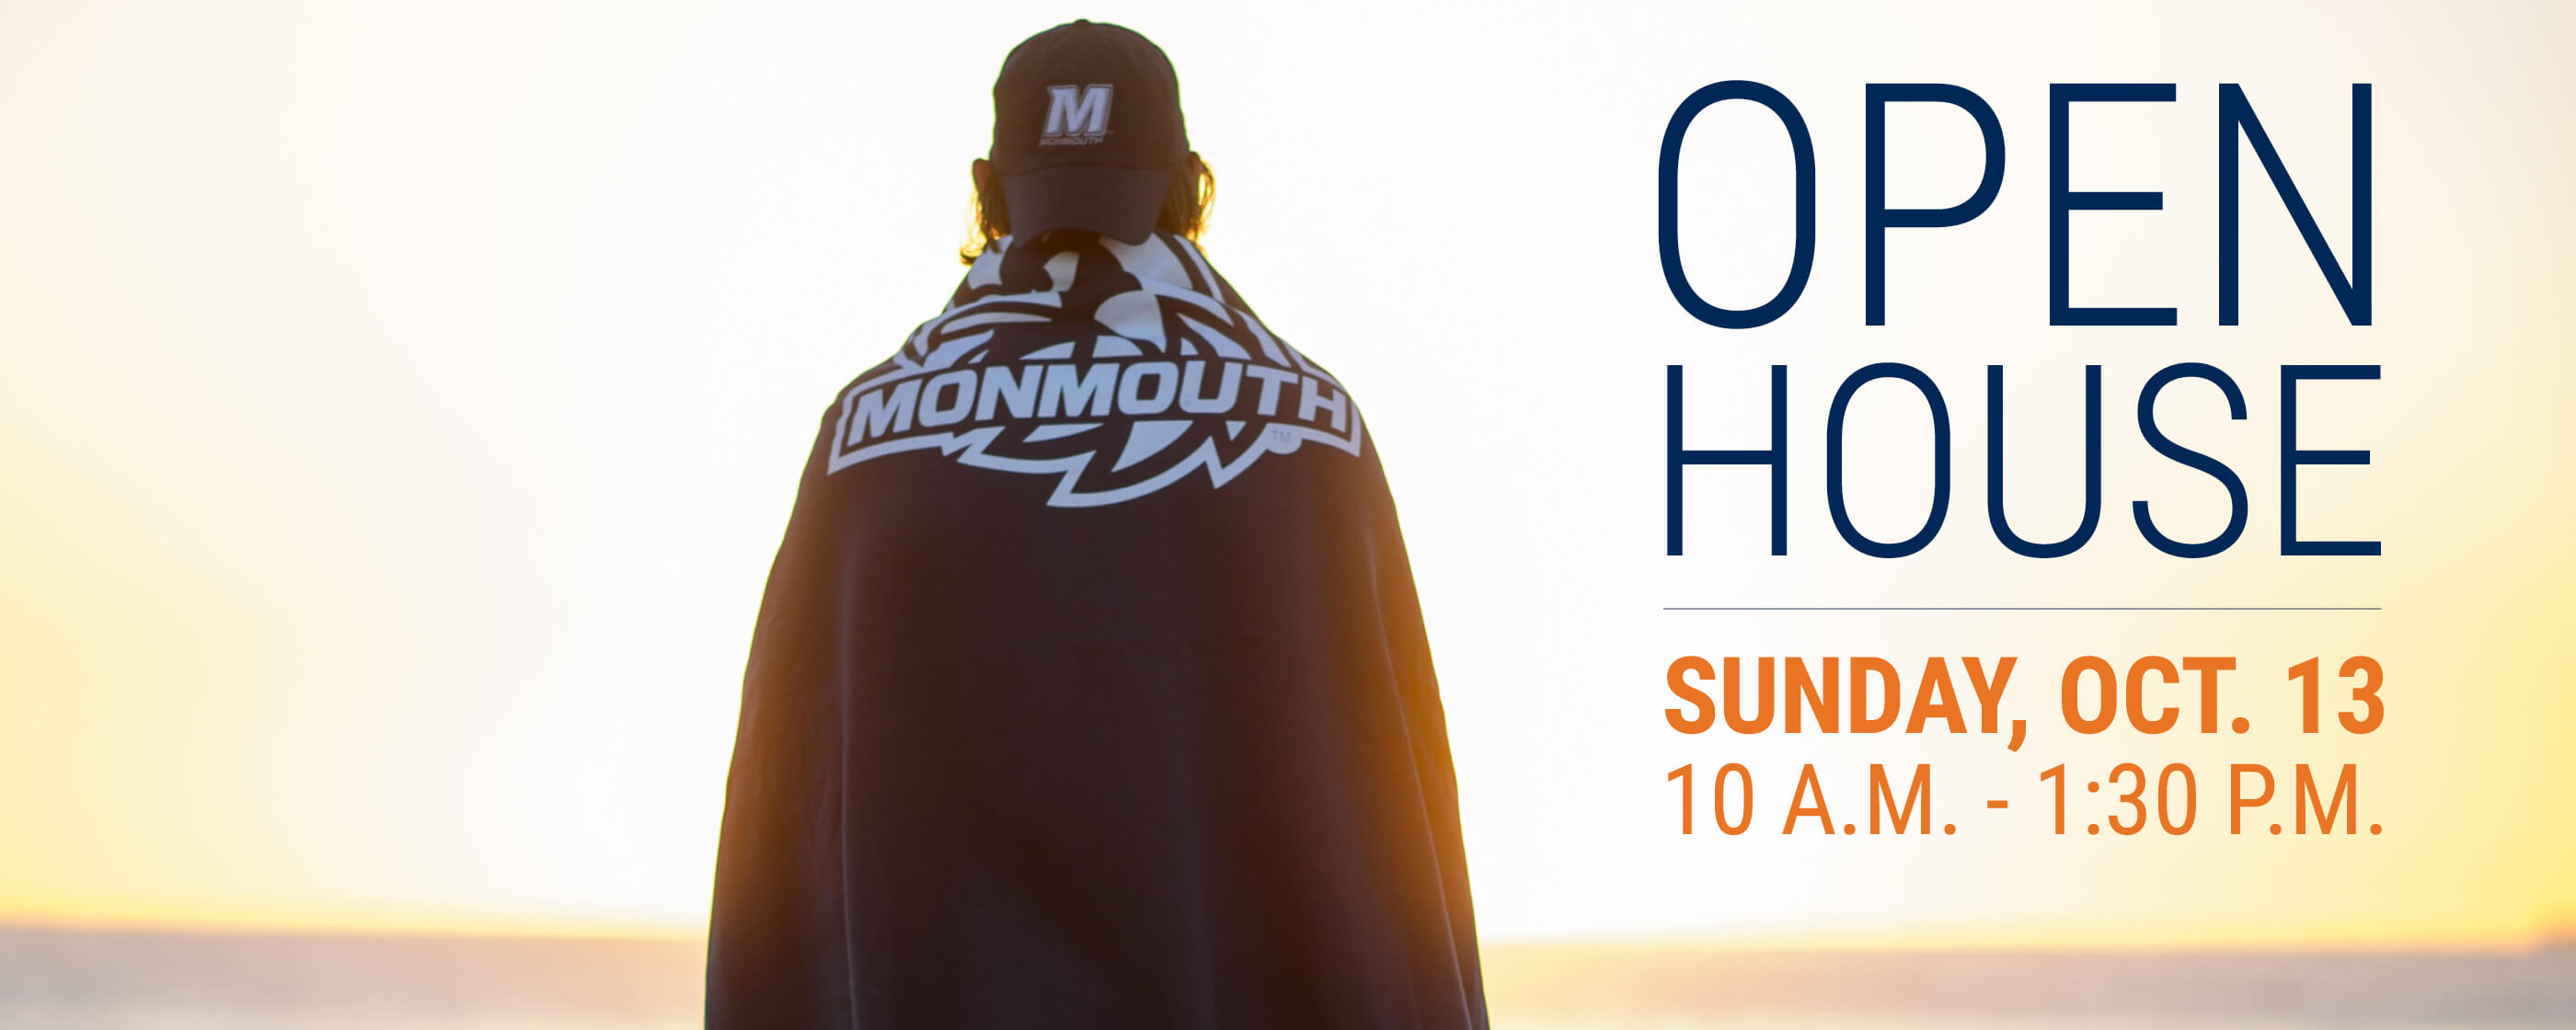 Register today for our open house on Sunday Oct. 13 from 10 a.m. to 1:30 p.m.